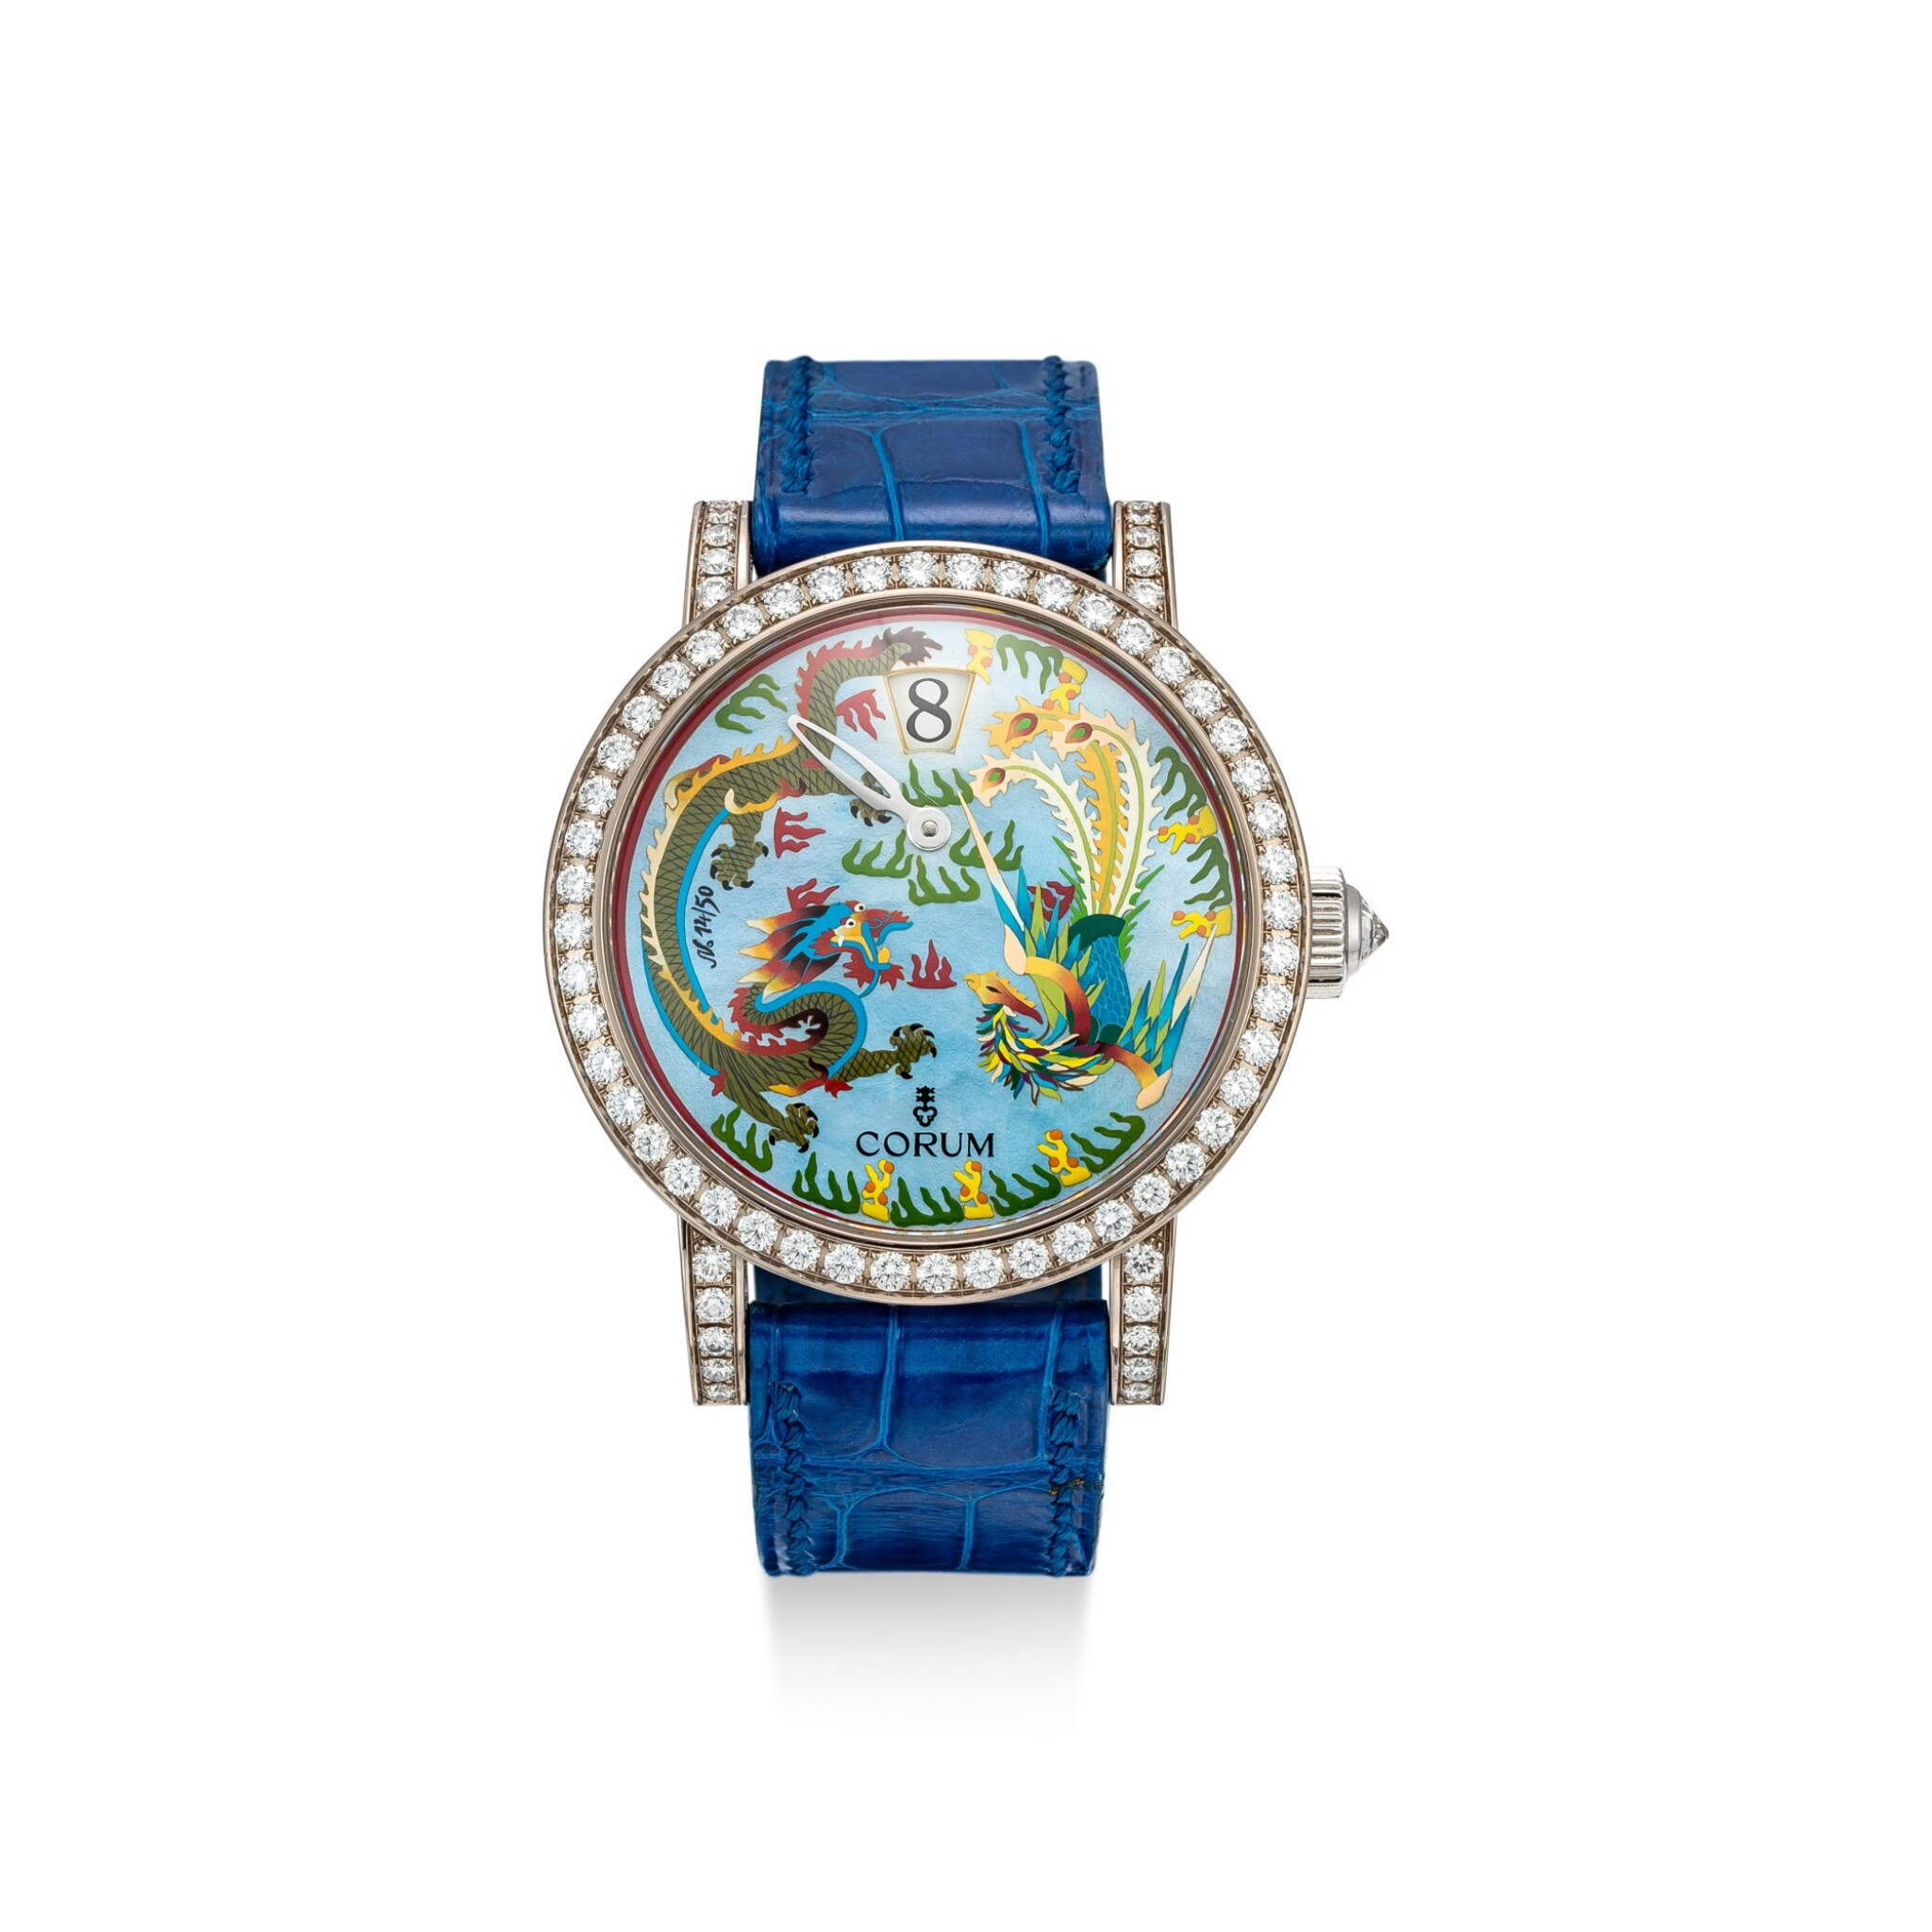 View full screen - View 1 of Lot 859. CORUM | REFERENCE 254.102.69 A LIMITED EDITION WHITE GOLD AND DIAMOND-SET JUMPING HOUR WRISTWATCH WITH MOTHER-OF-PEARL AND ENAMEL DIAL, CIRCA 2005.